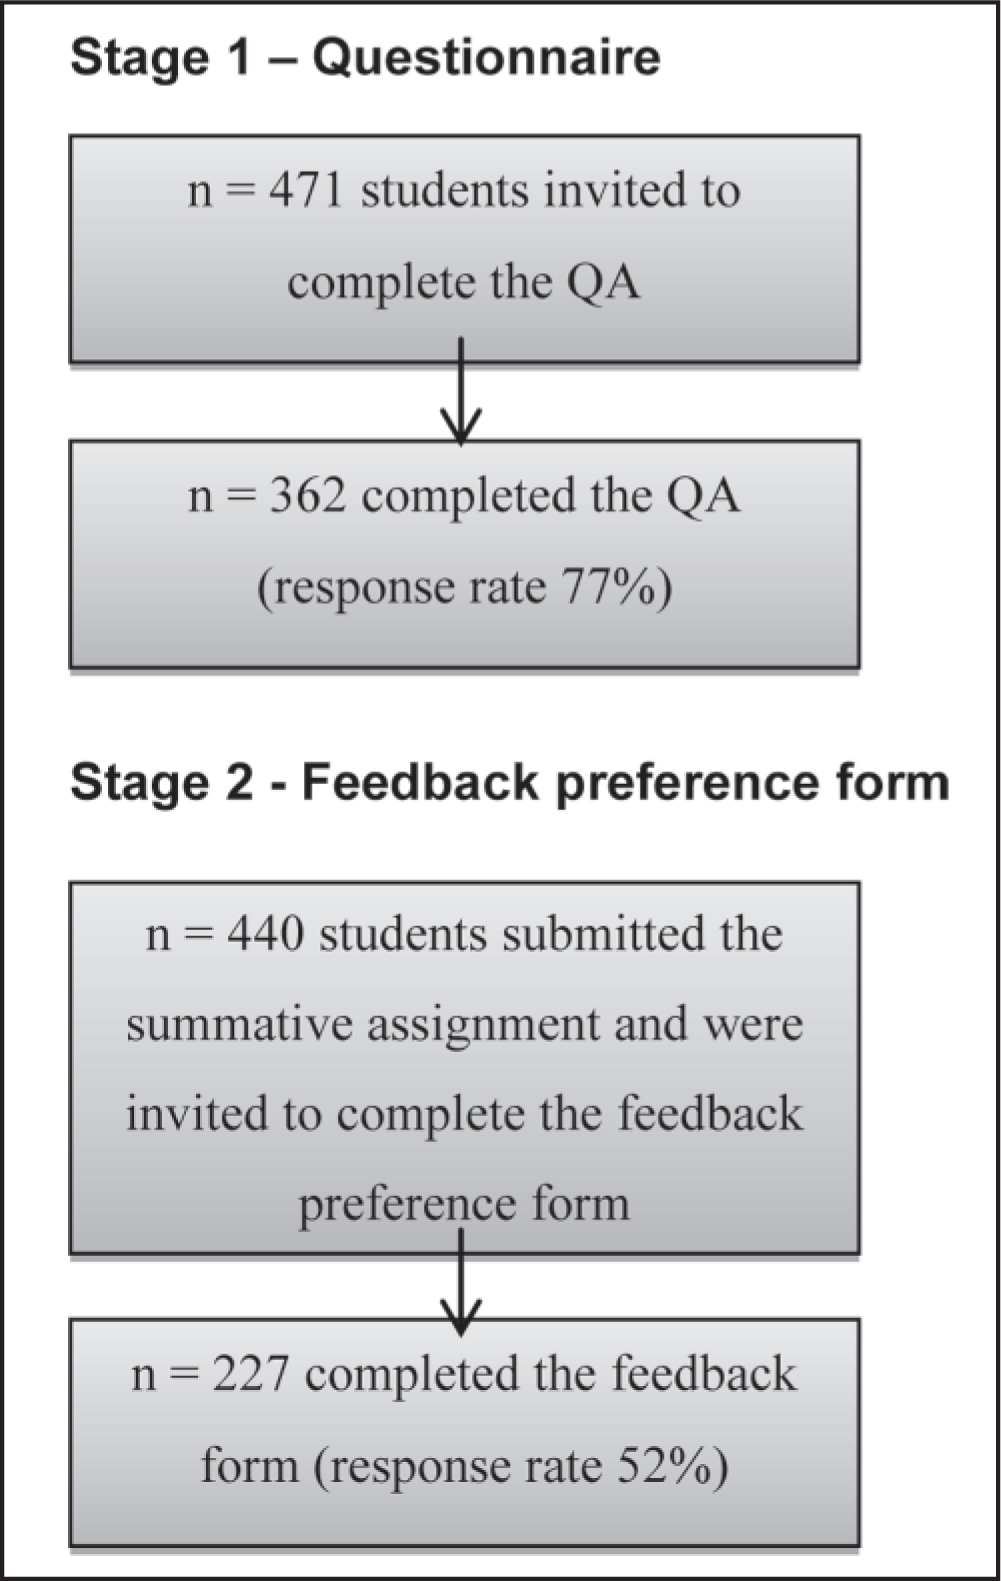 Recruitment strategy used in the current study.